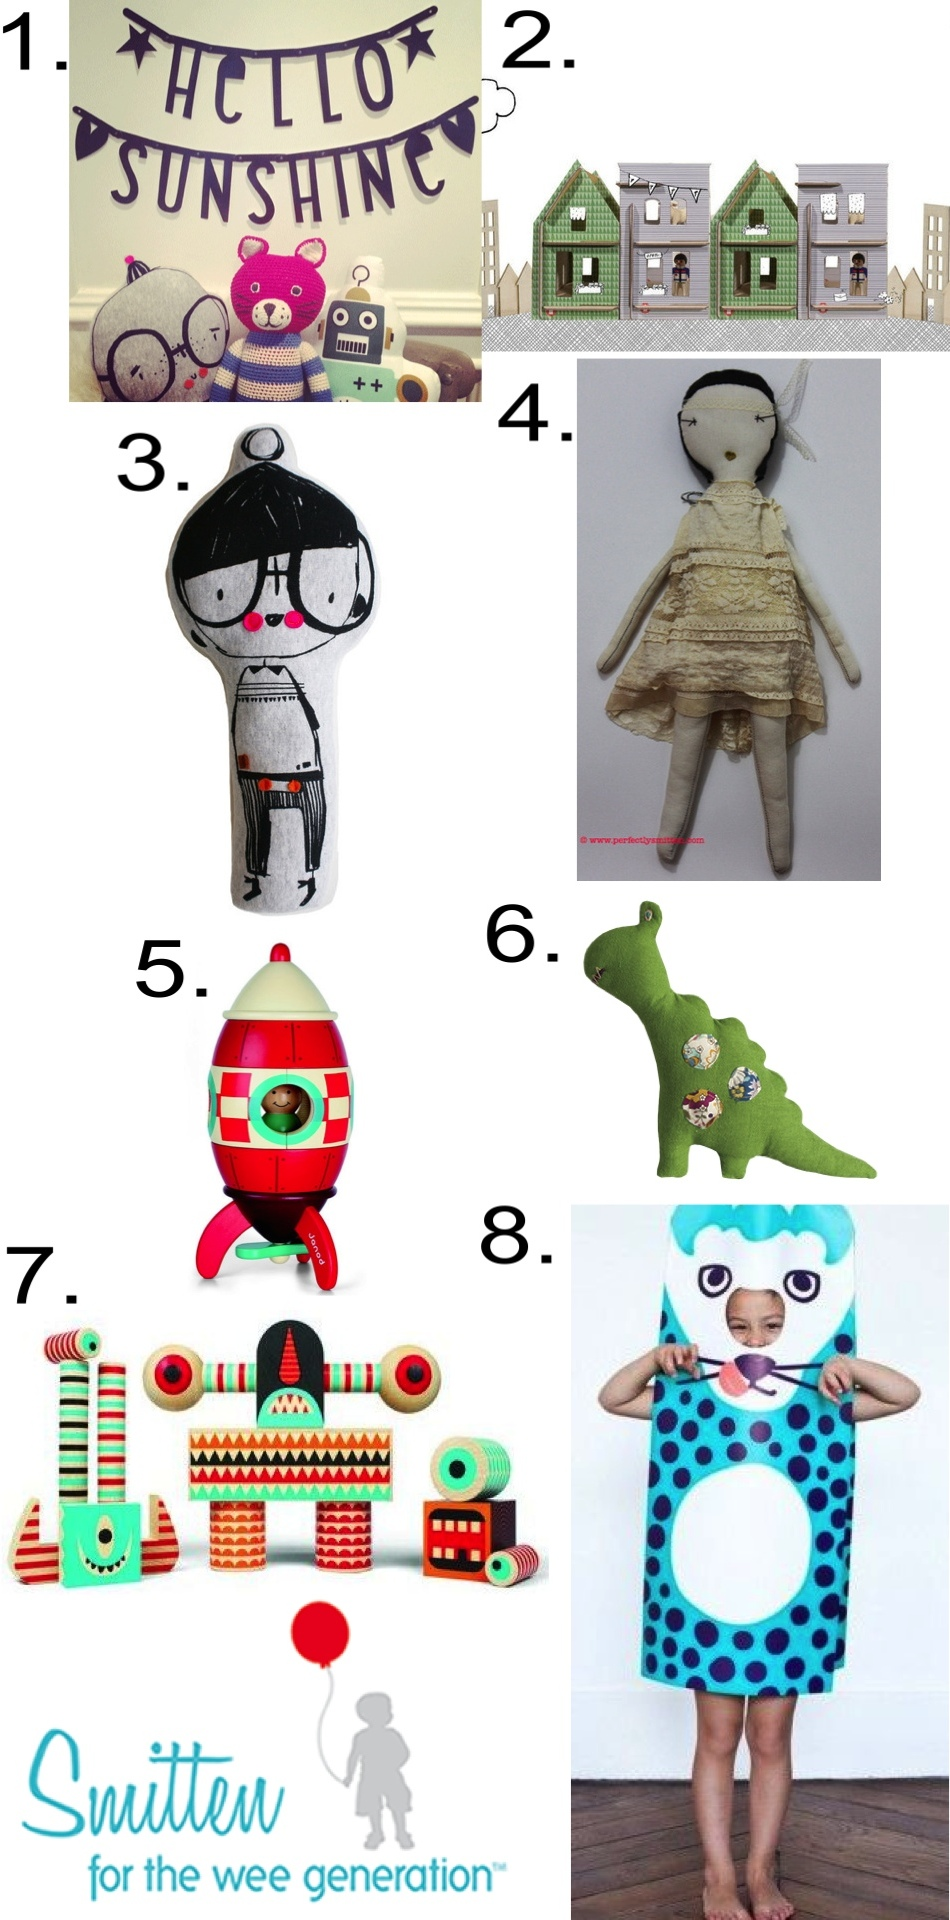 1.  LETTER BANNER  2.  LILLE CITY HOUSE SET  3.  WILBY SOFT TOY  4.  JESS BROWN RAG DOLL NO. 17   5.  MAGNETIC ROCKET KIT  6.  DRAGON RATTLE  7.  STACK & SCARE BLOCKS NO. 3  8.  LARGE PAPER COSTUME - PANTHER